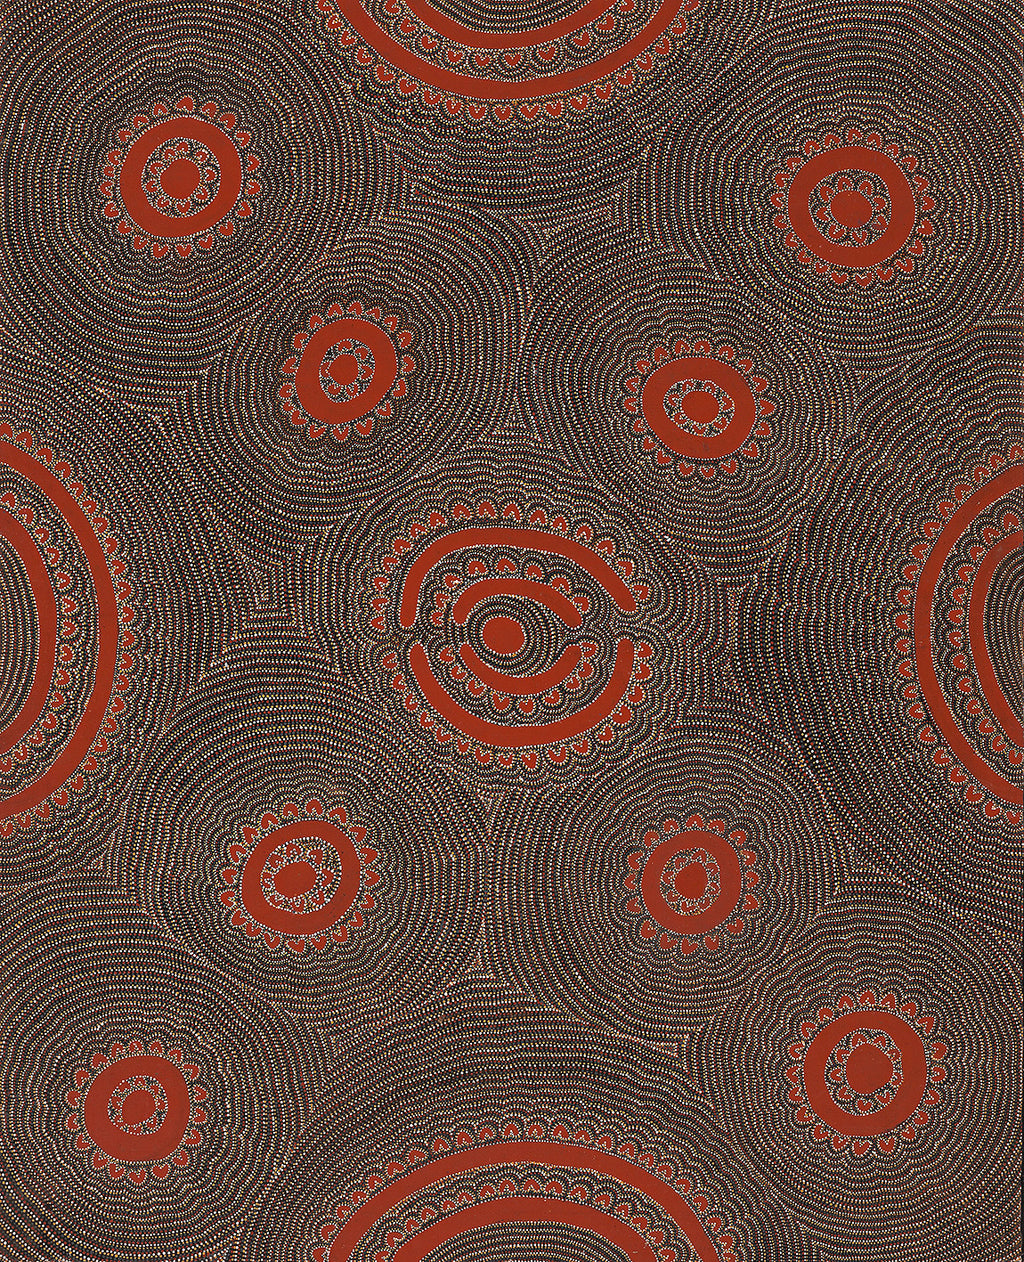 Lily Sandover Kngwarreye, Painting 1Z98, 1991, 120x150cm - Delmore Gallery